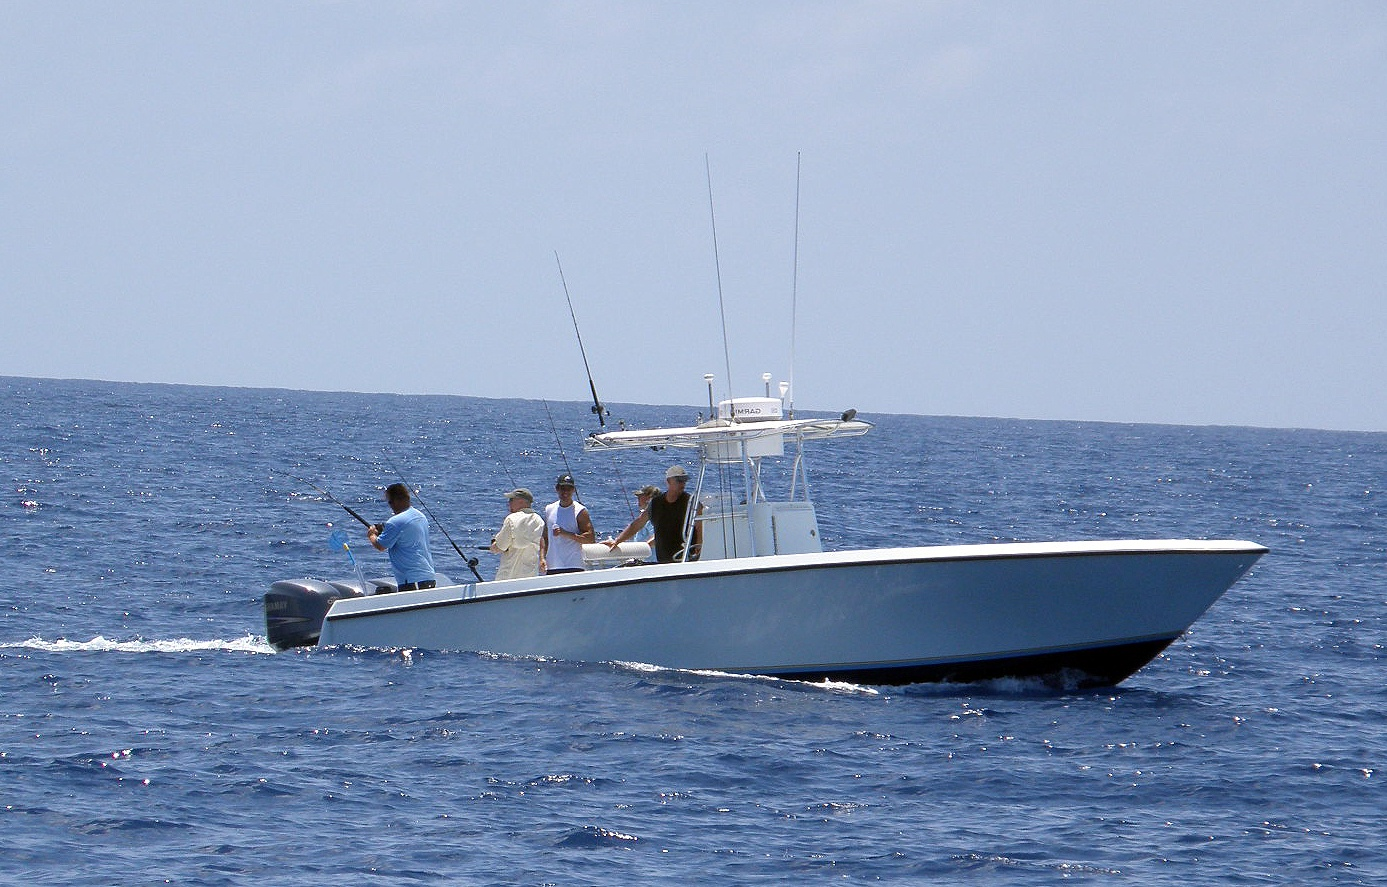 Several people fishing from a boat in open water.